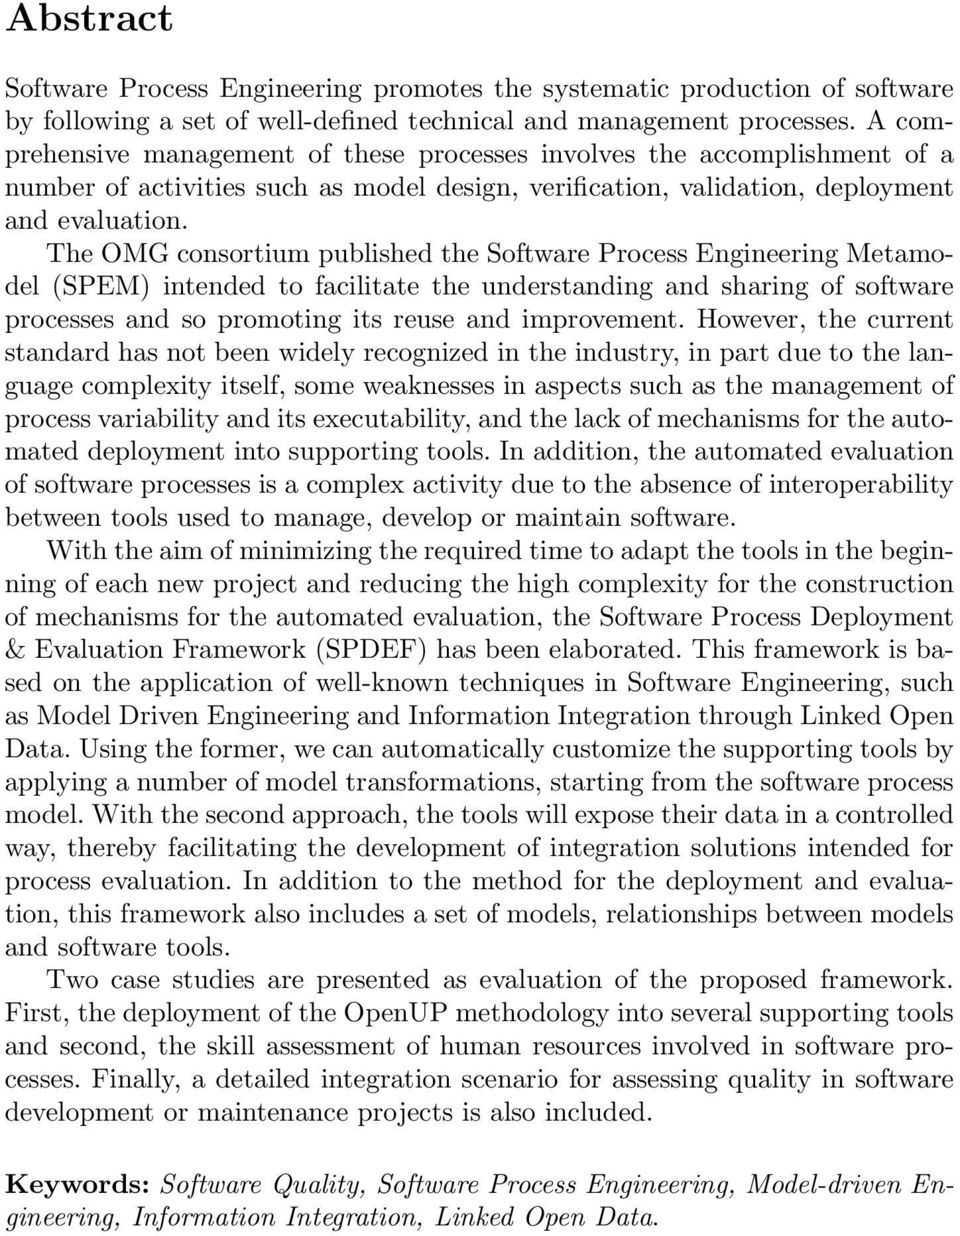 The OMG consortium published the Software Process Engineering Metamodel (SPEM) intended to facilitate the understanding and sharing of software processes and so promoting its reuse and improvement.